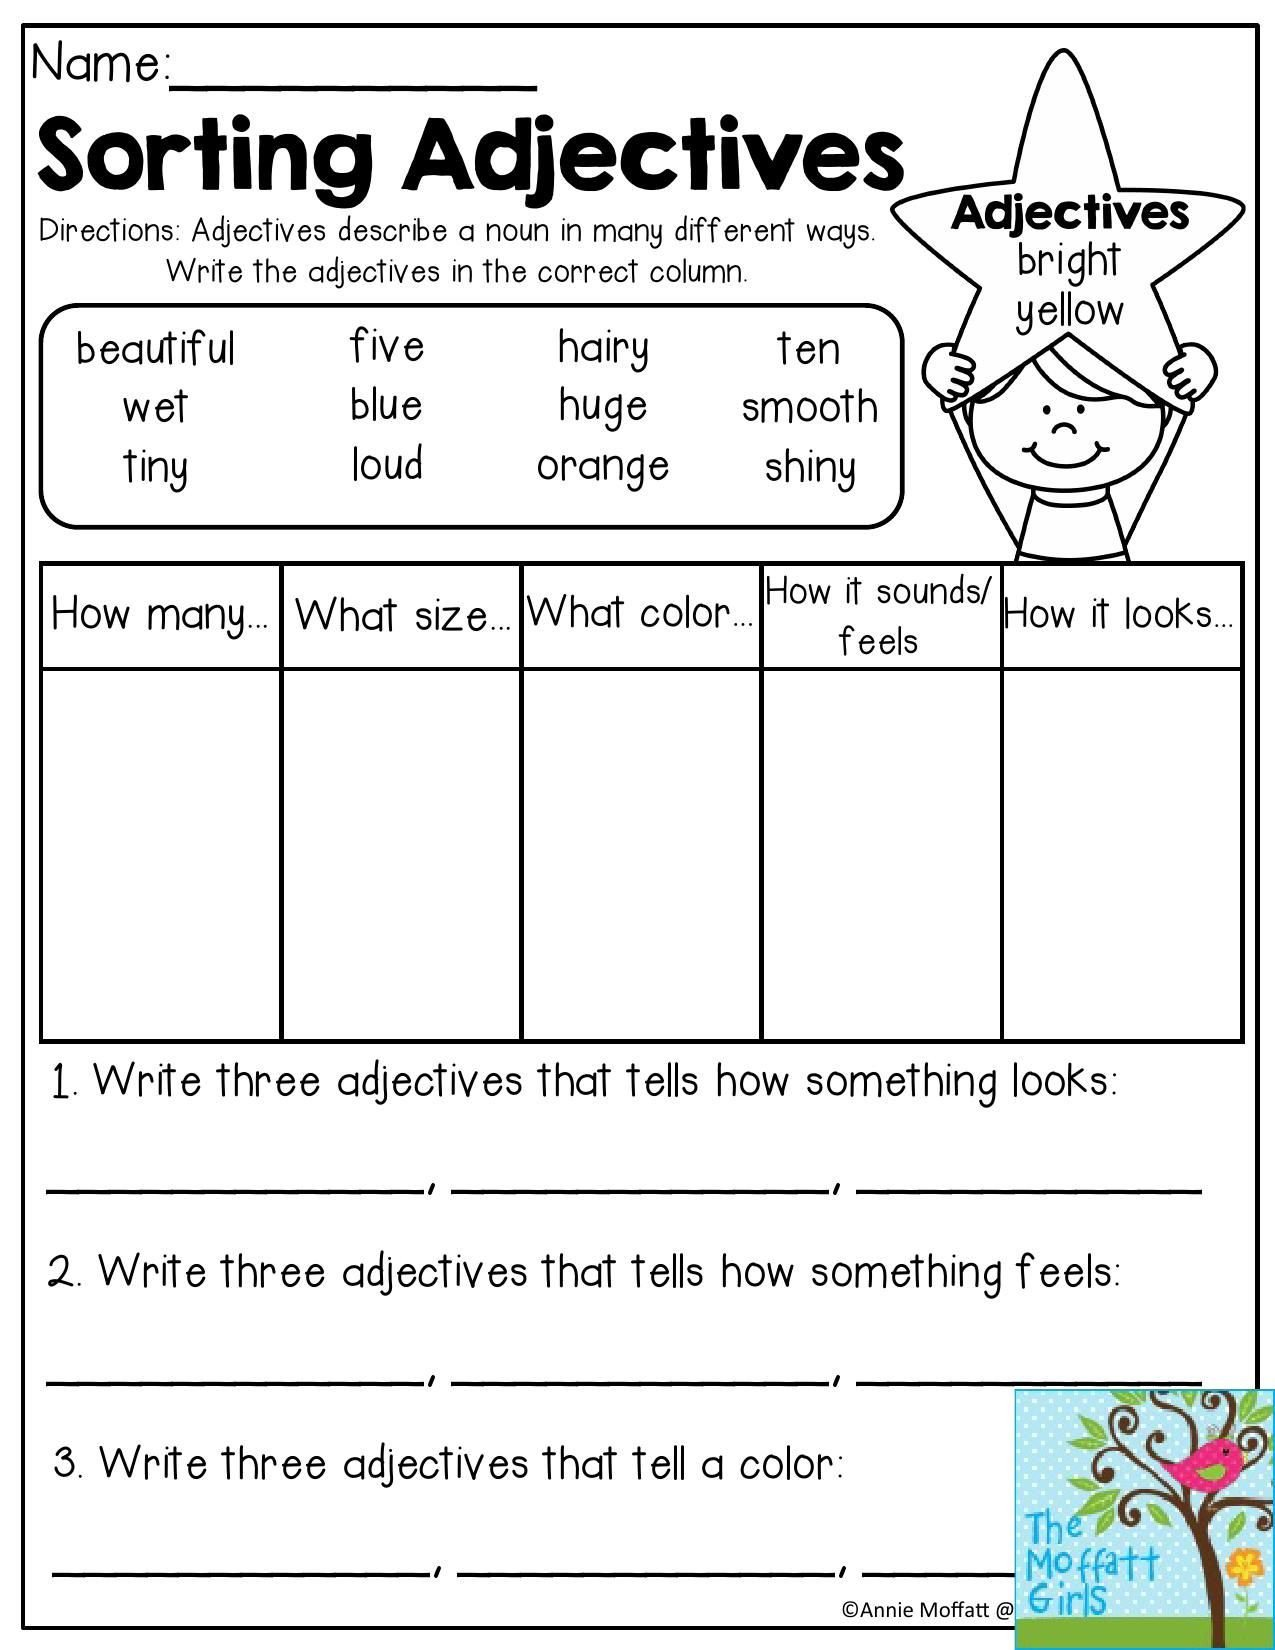 Adjectives Worksheets 3rd Grade sorting Adjectives Adjectives Describe A Noun In Many